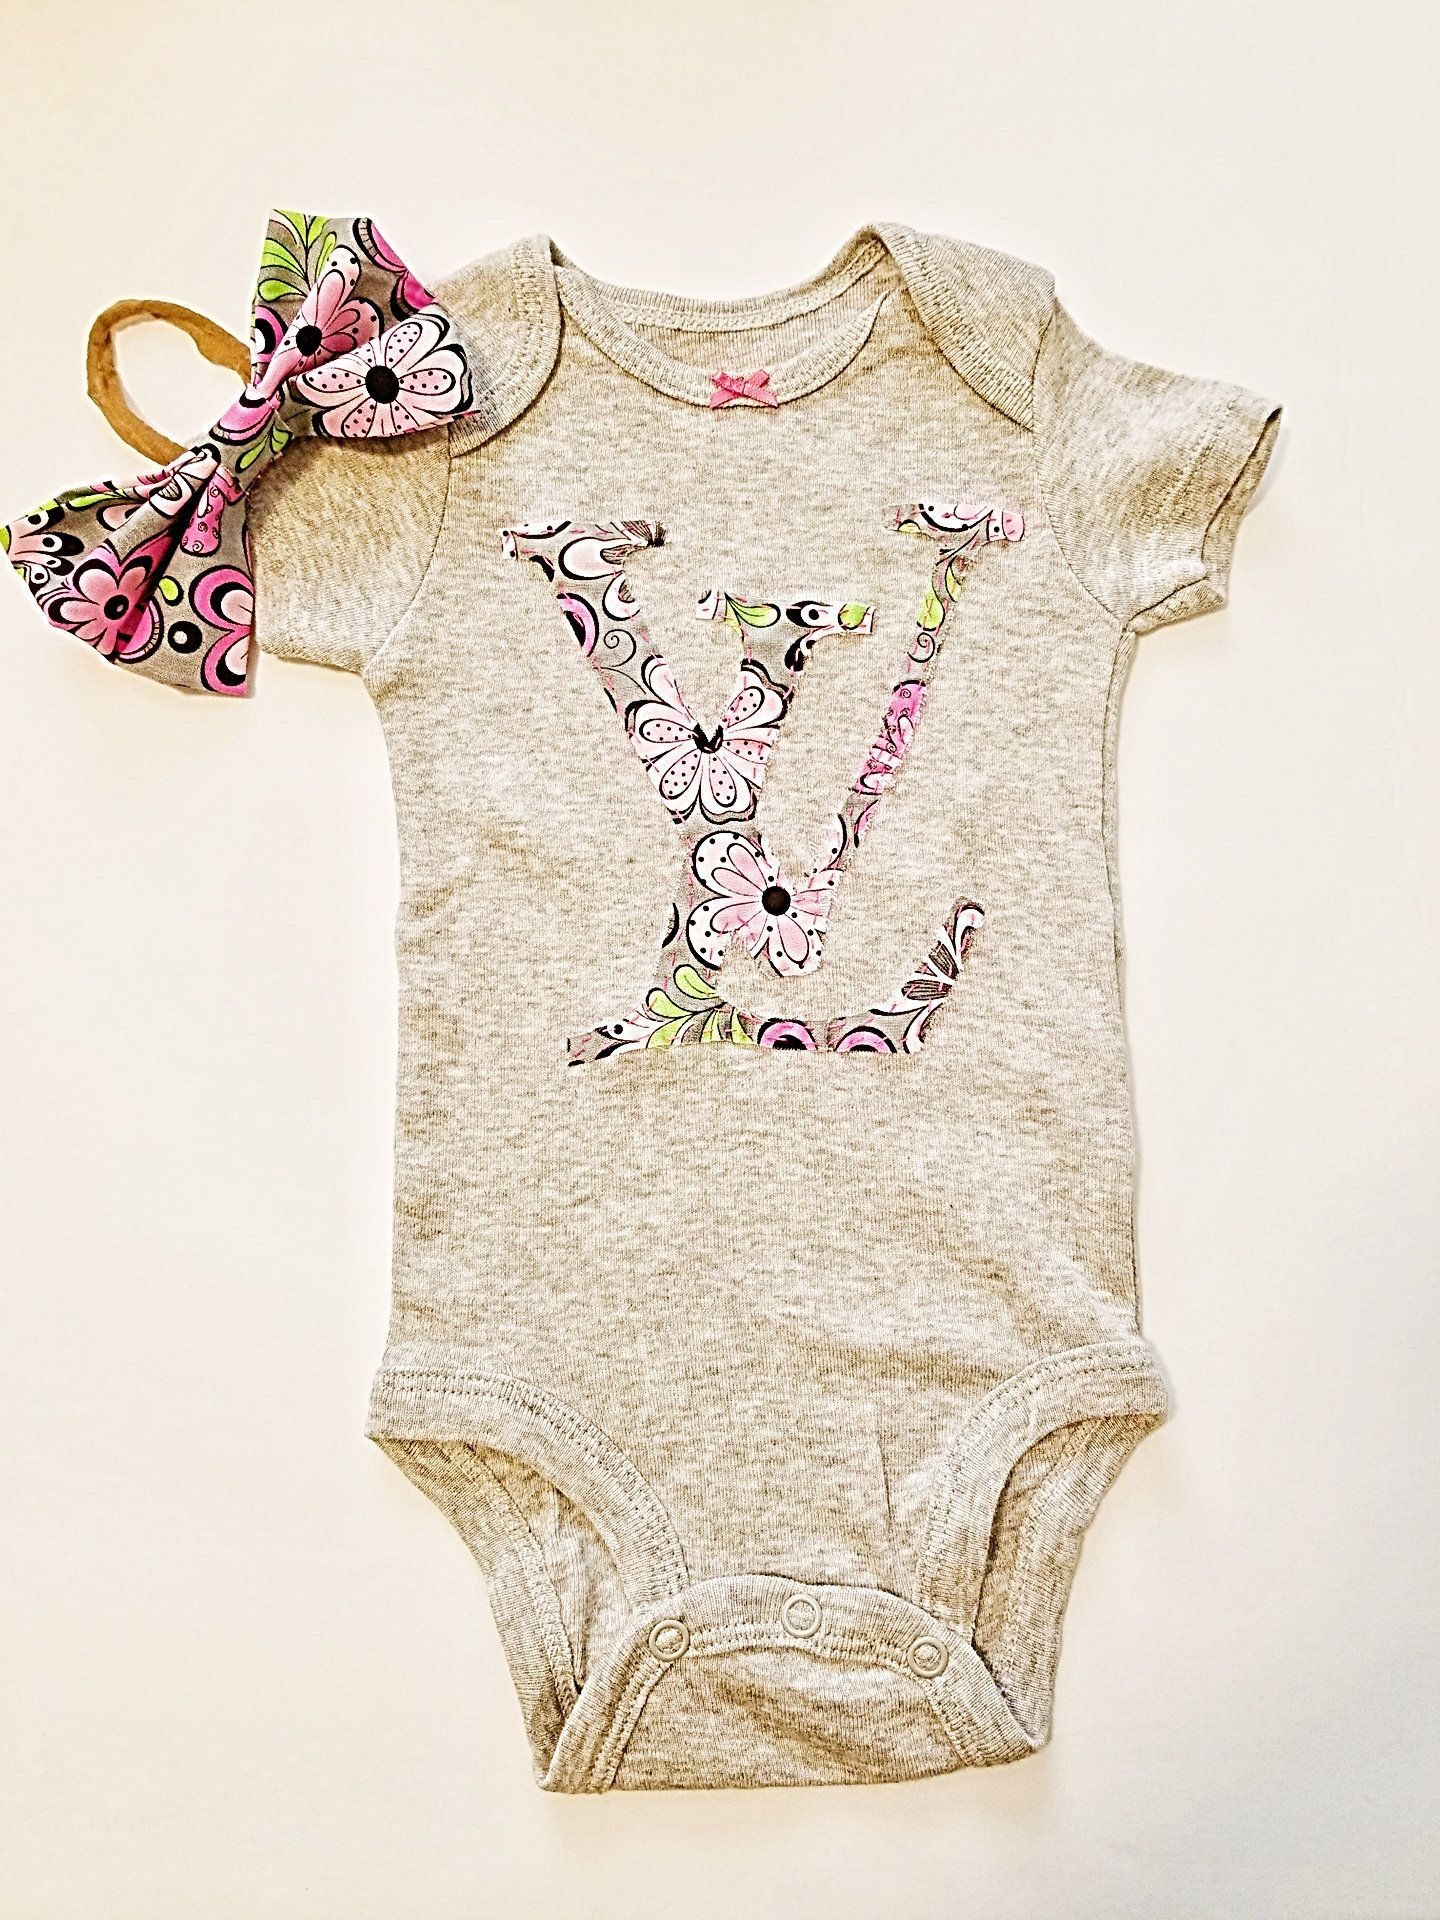 Baby Girl Newborn Bodysuit wedding party birthday outfits baby shower gift